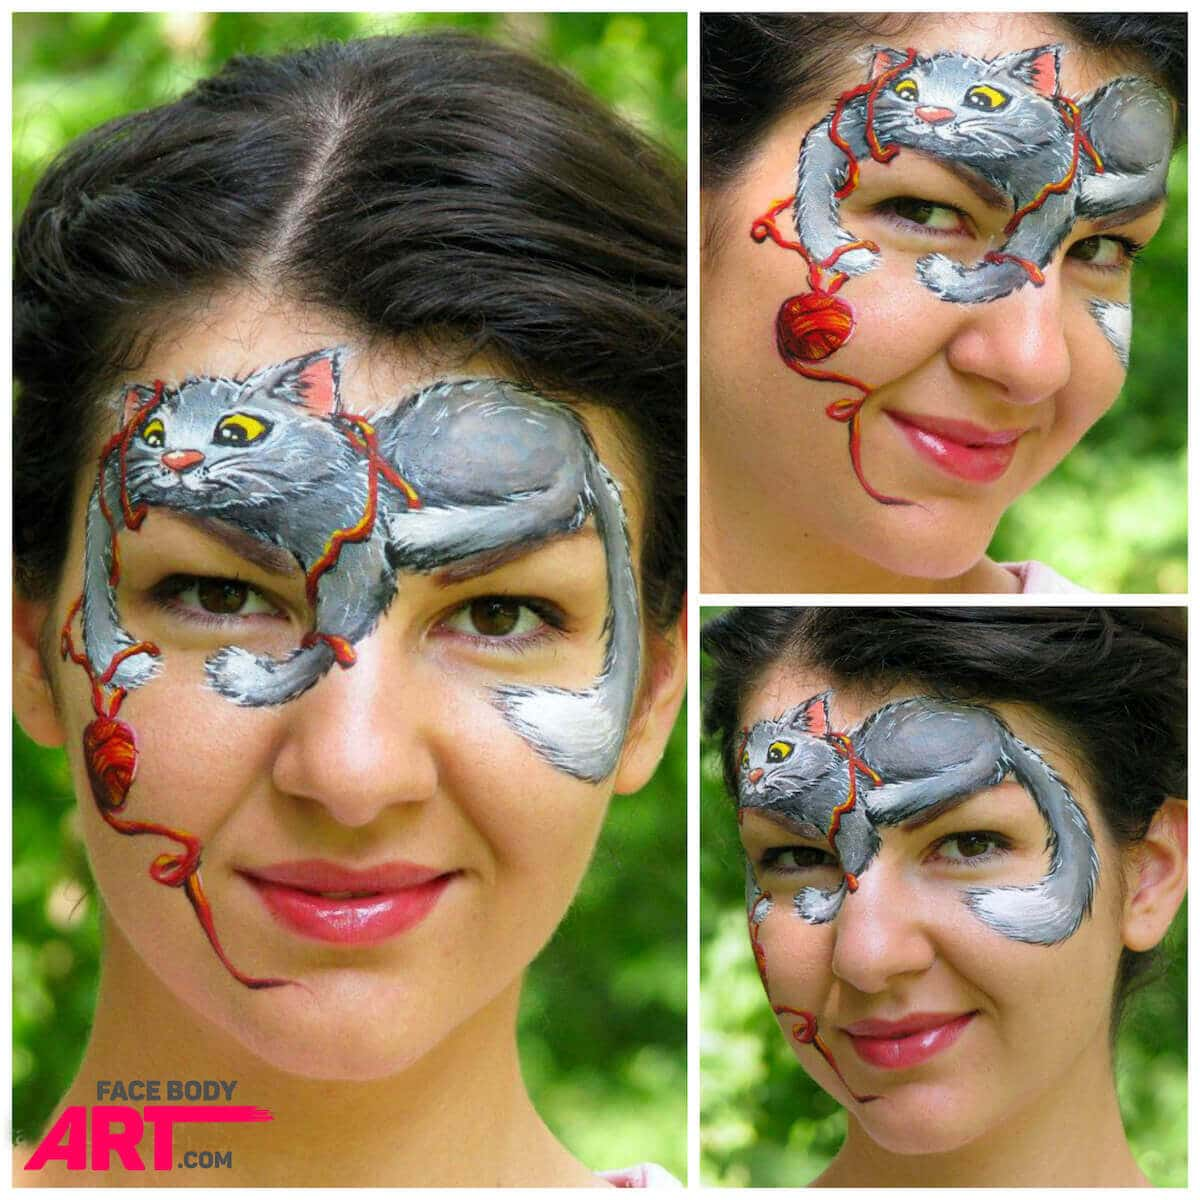 Playful Kitten Face Painting Step by Ste - photo#24